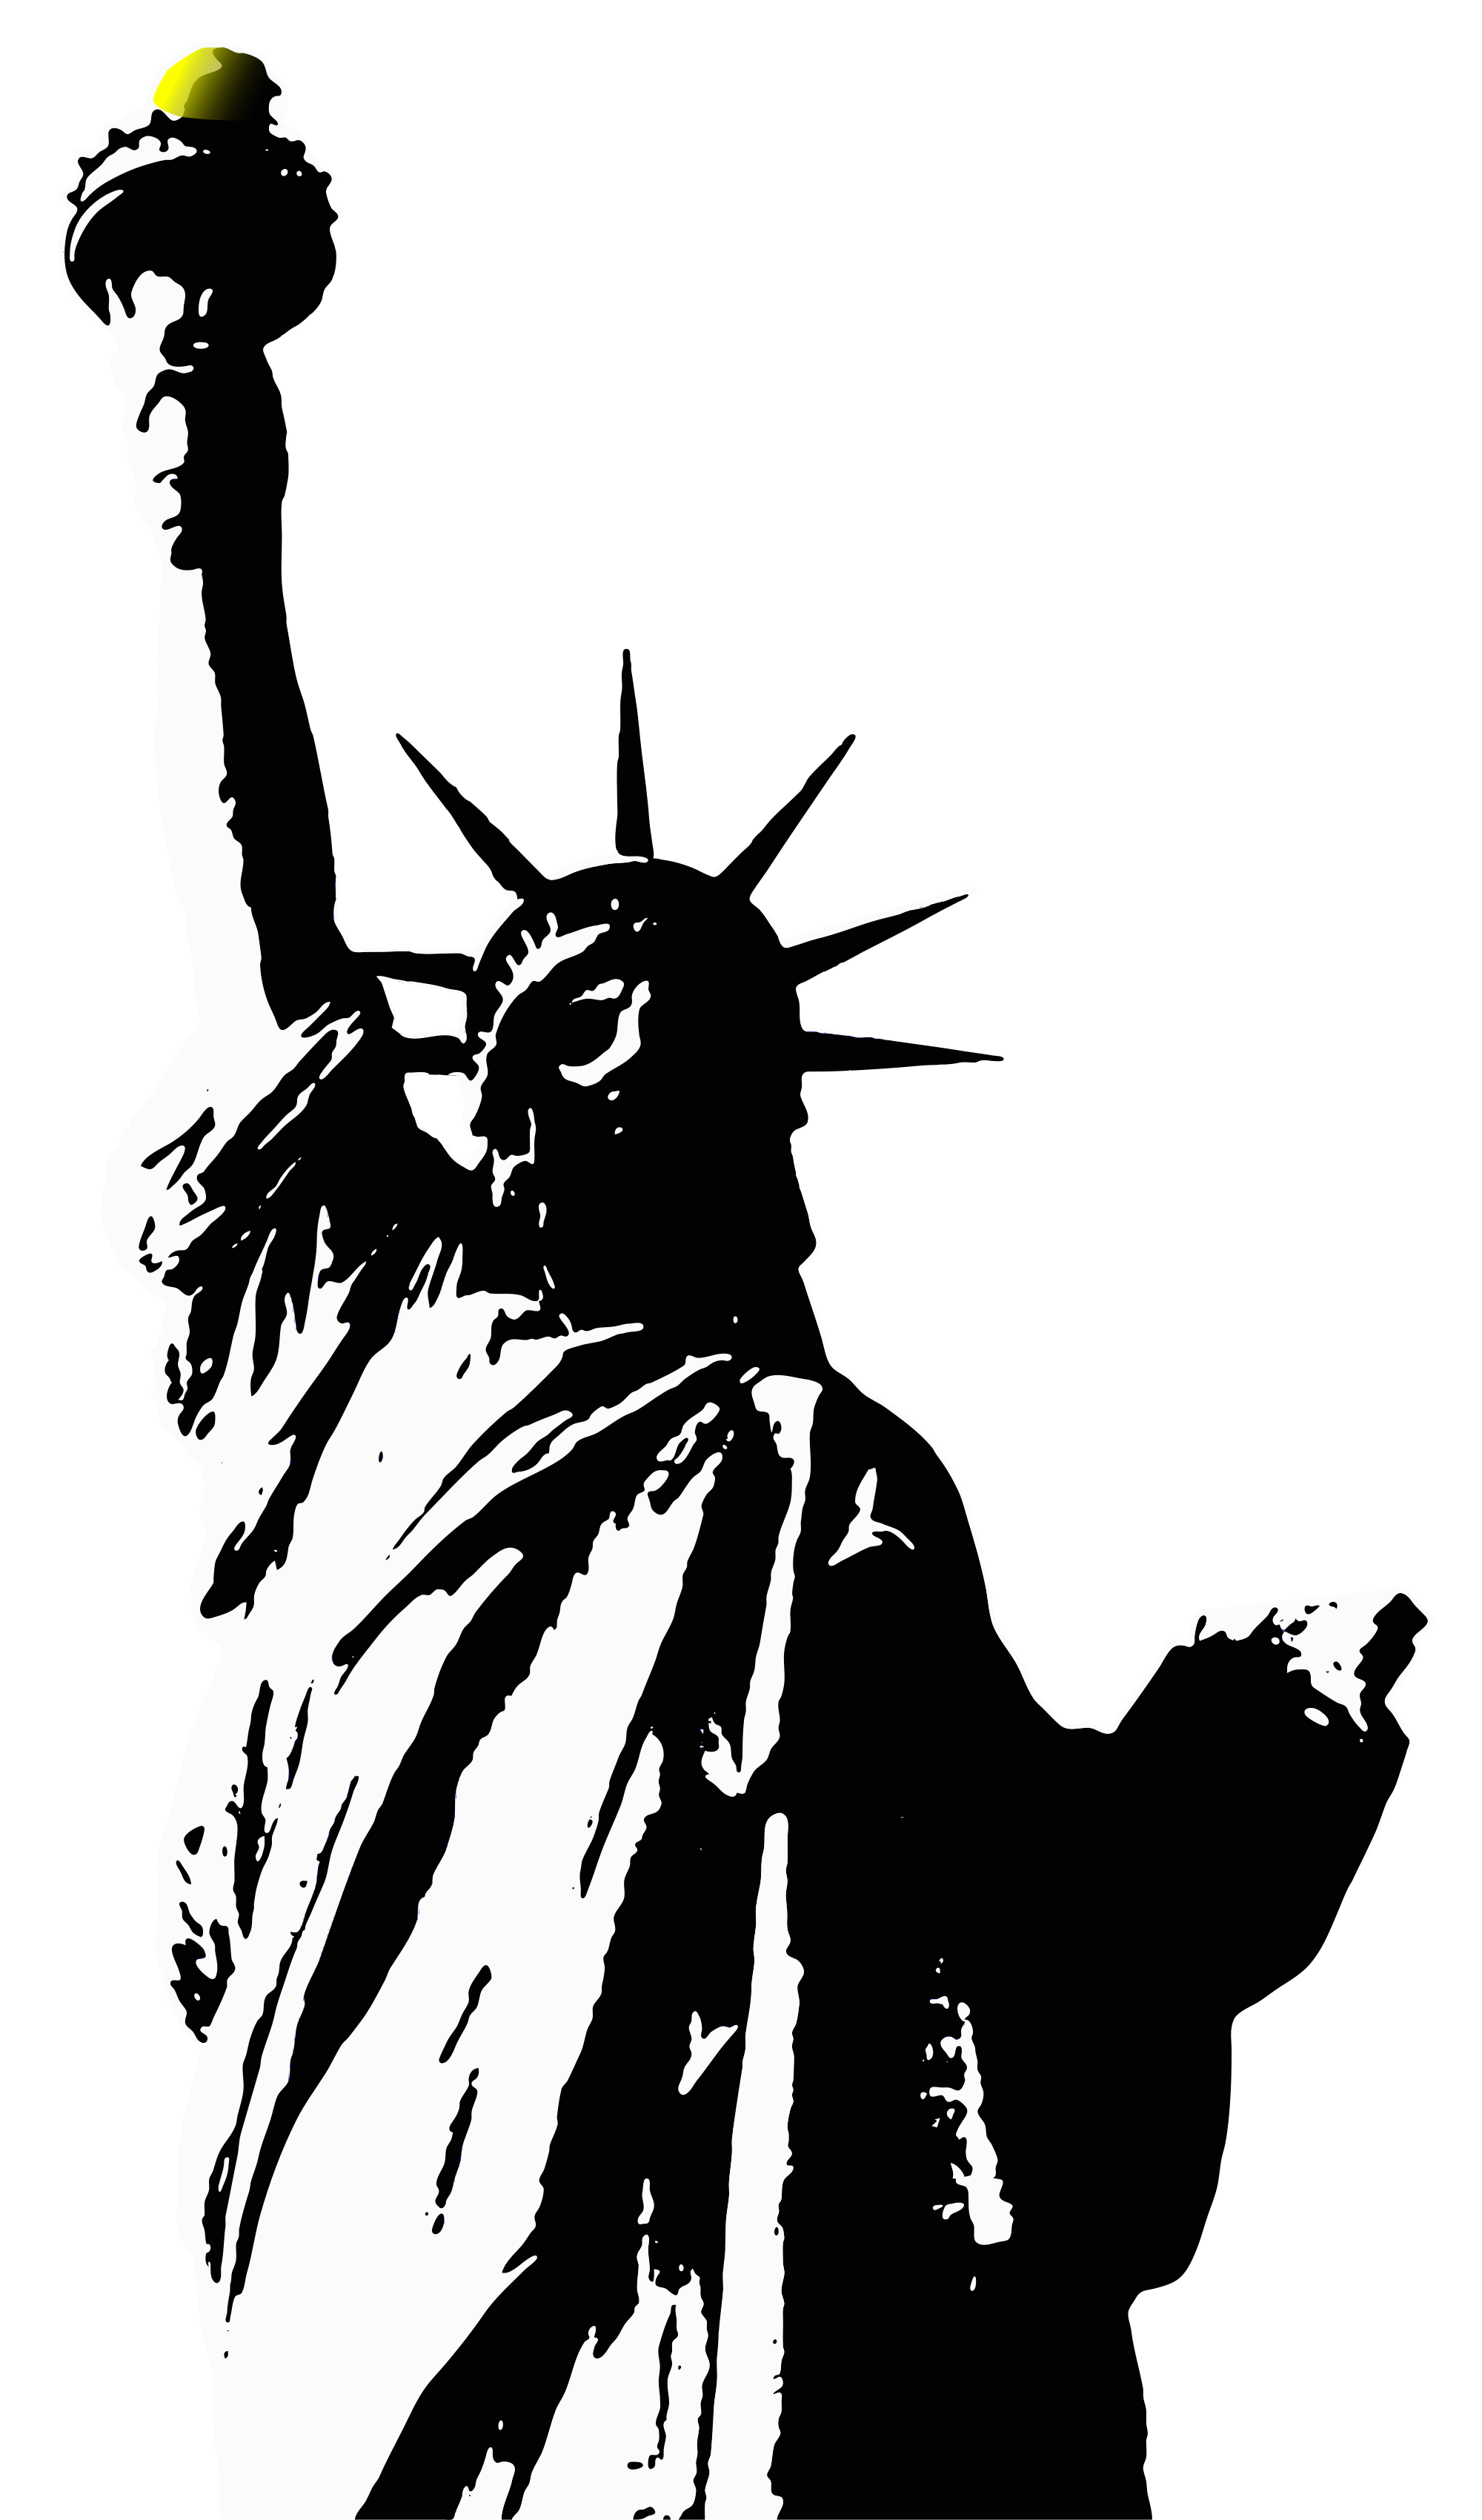 Image statue of liberty black and white clipart clipart free download Pin by Hopeless on Clipart | Statue of liberty, Statue, Liberty island clipart free download